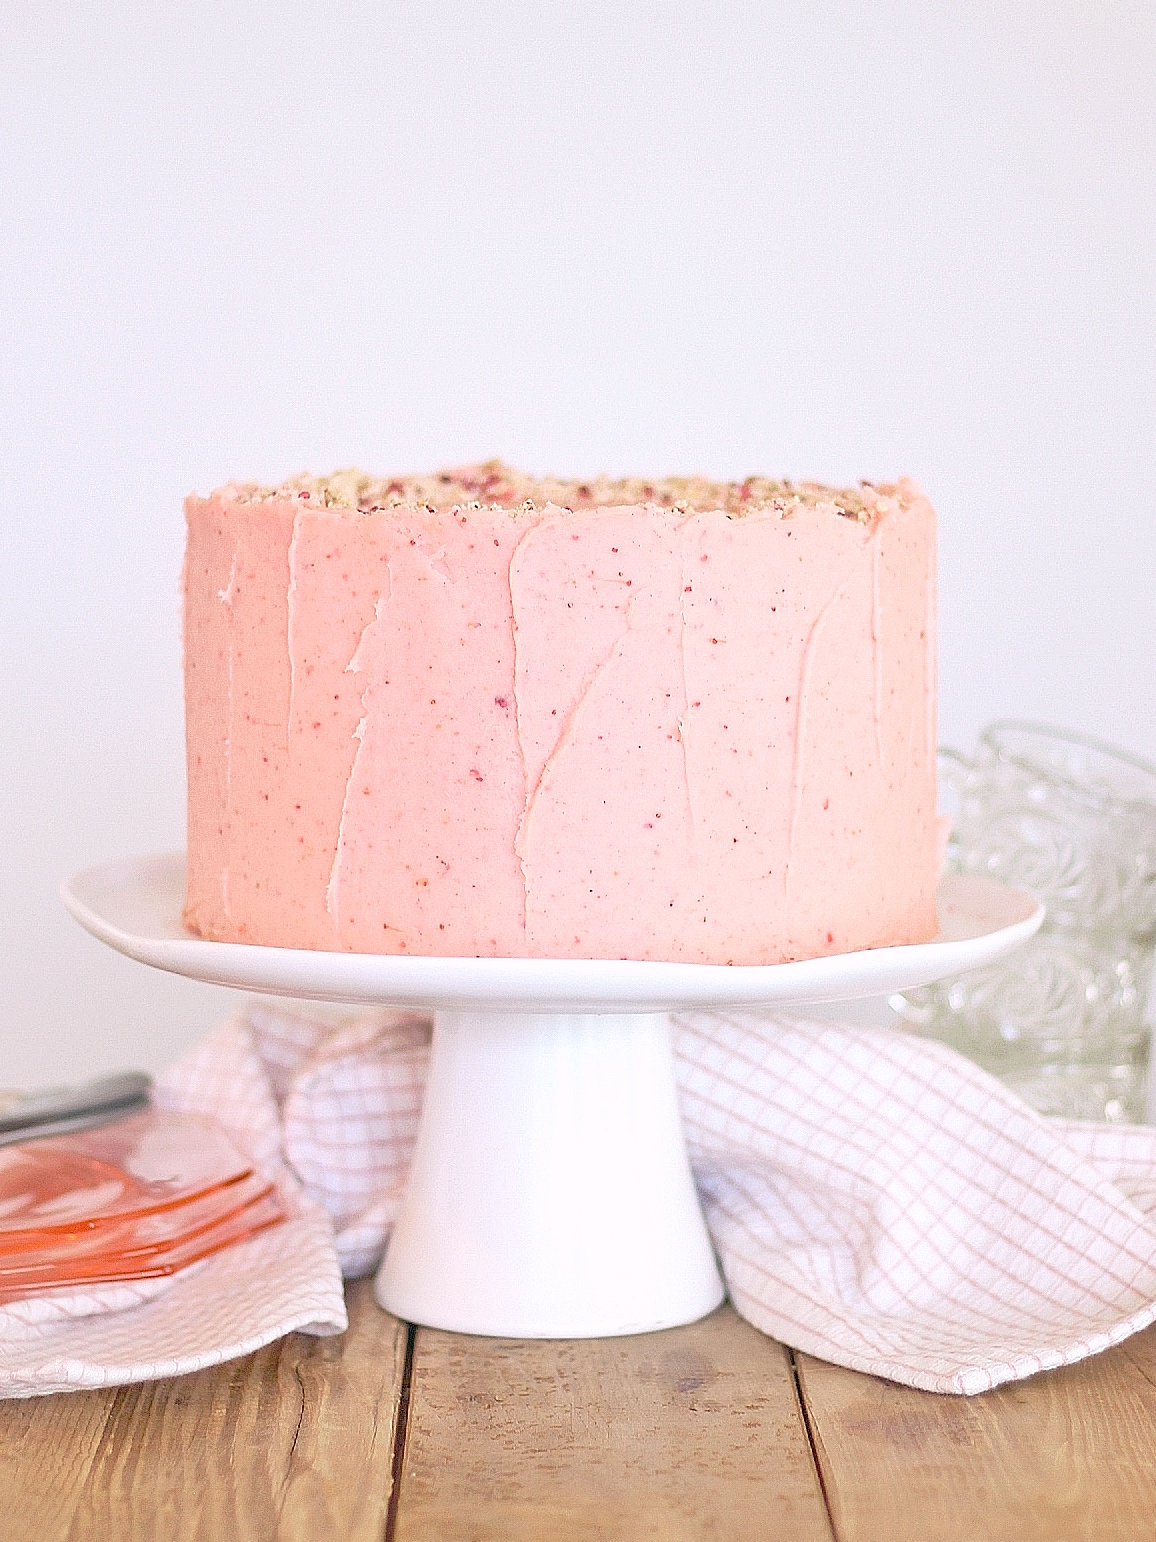 Strawberry Pretzel Delight Cake - tender yellow cake layers with strawberry buttercream and a strawberry pretzel crunch filling. #cakebycourtney #cakerecipe #summercakerecipe #summerdessert #yellowcake #strawberrybuttercream #strawberrycake #strawberrypretzeldelightcake